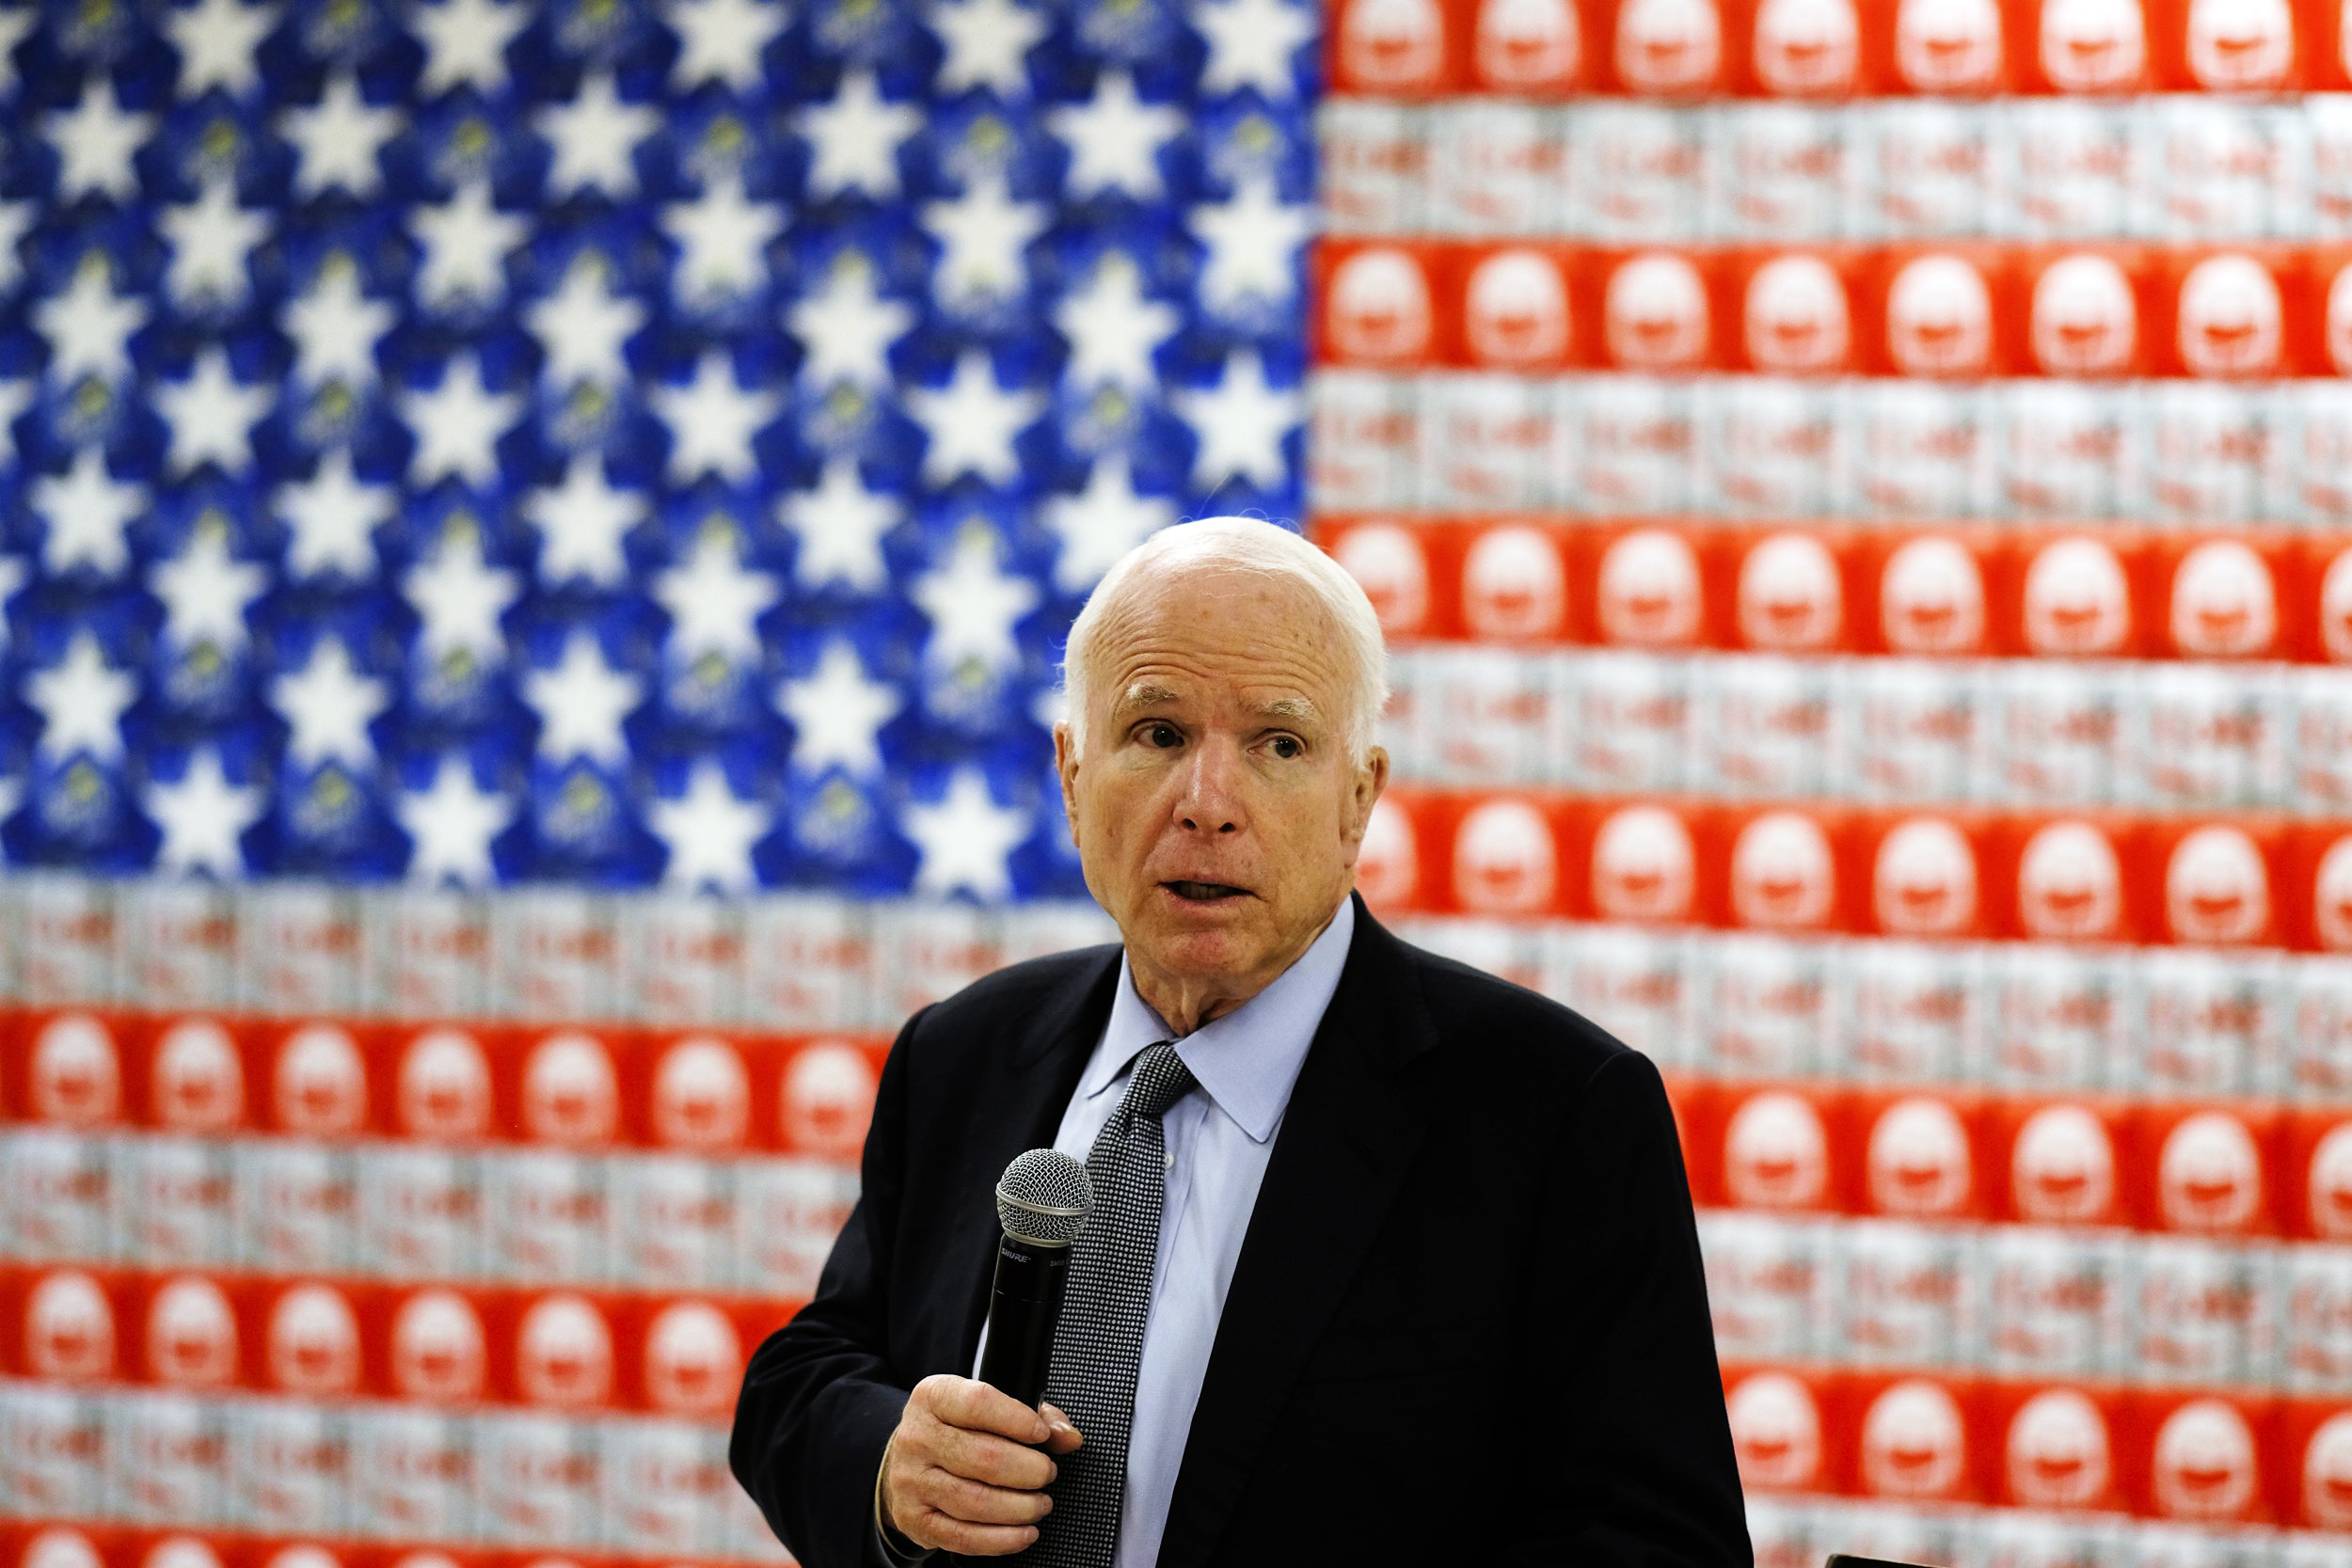 Sen John McCain campaigns for re election to the Senate at Coca Cola bottling plant in Tempe, Ariz. on Aug. 23, 2016.